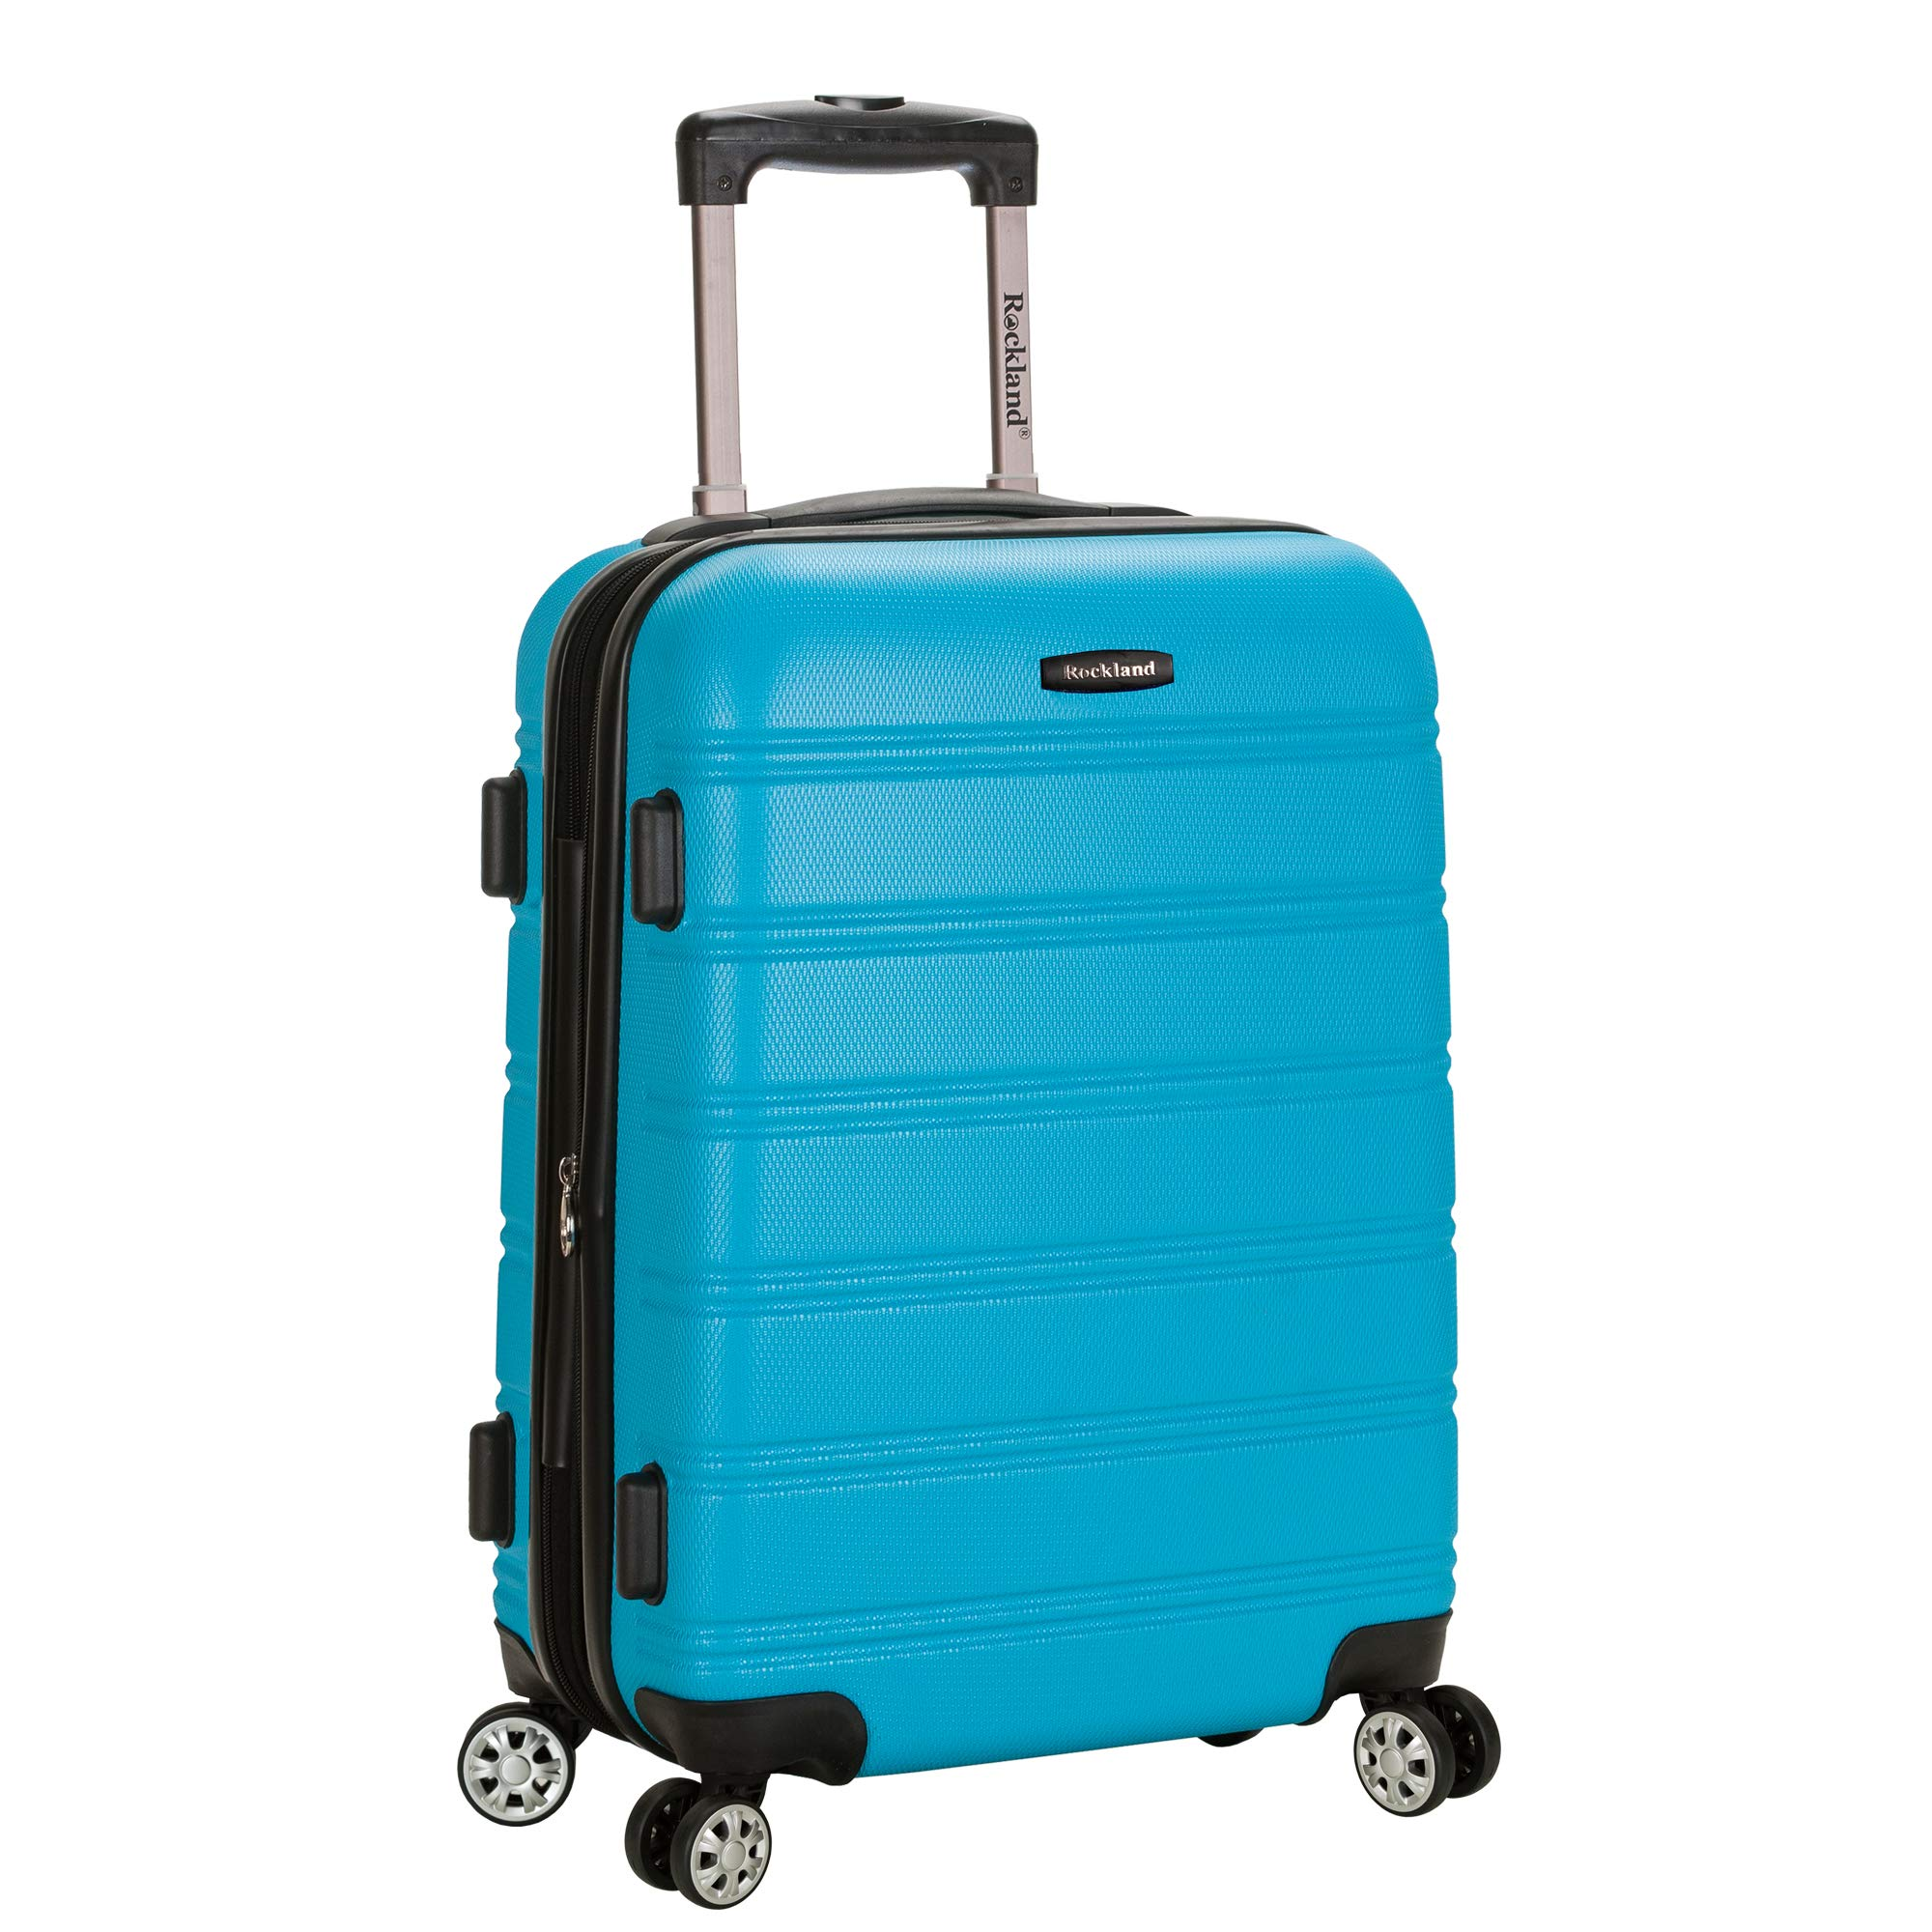 Rockland Luggage Melbourne 20 Inch Expandable Carry On, Turquoise, One Size by Rockland